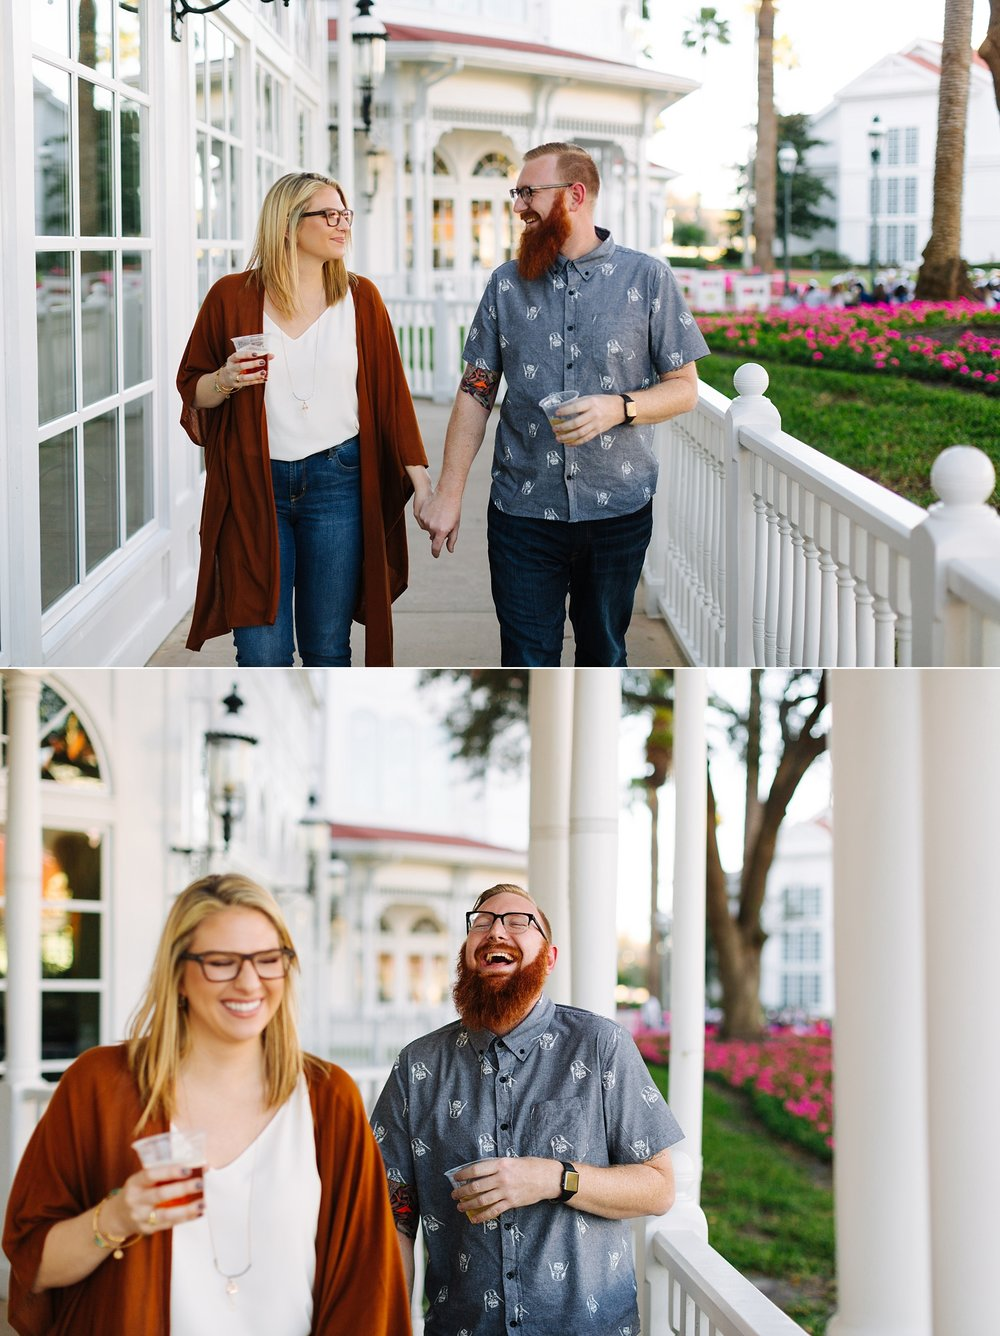 jake and katie photography - mike heather walt disney world engagement session monorail engagement session grand floridian engagement session polynesian resort engagement session